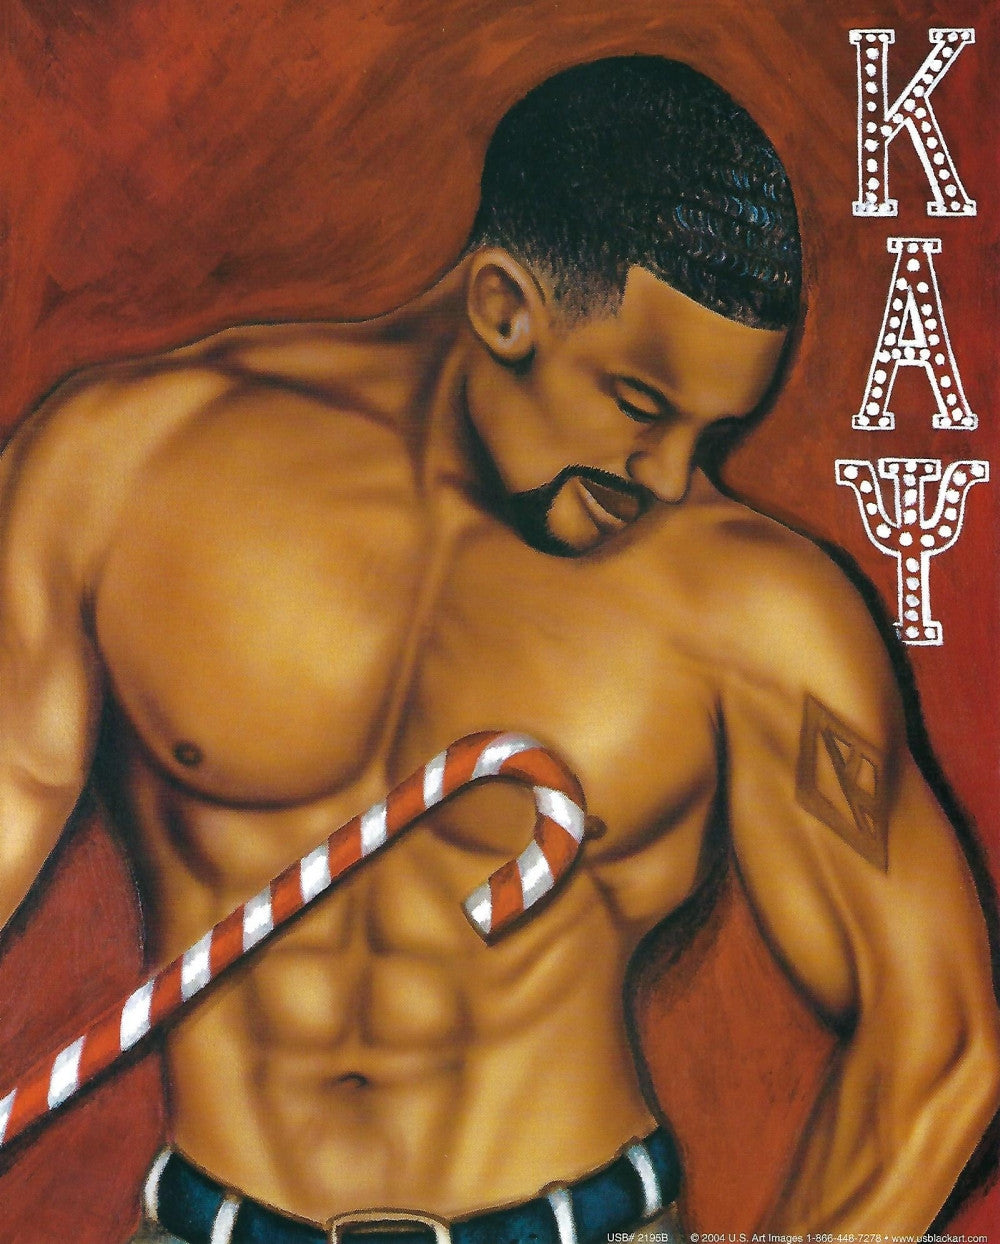 Kappa Alpha Psi by Fred Mathews (Art Print)